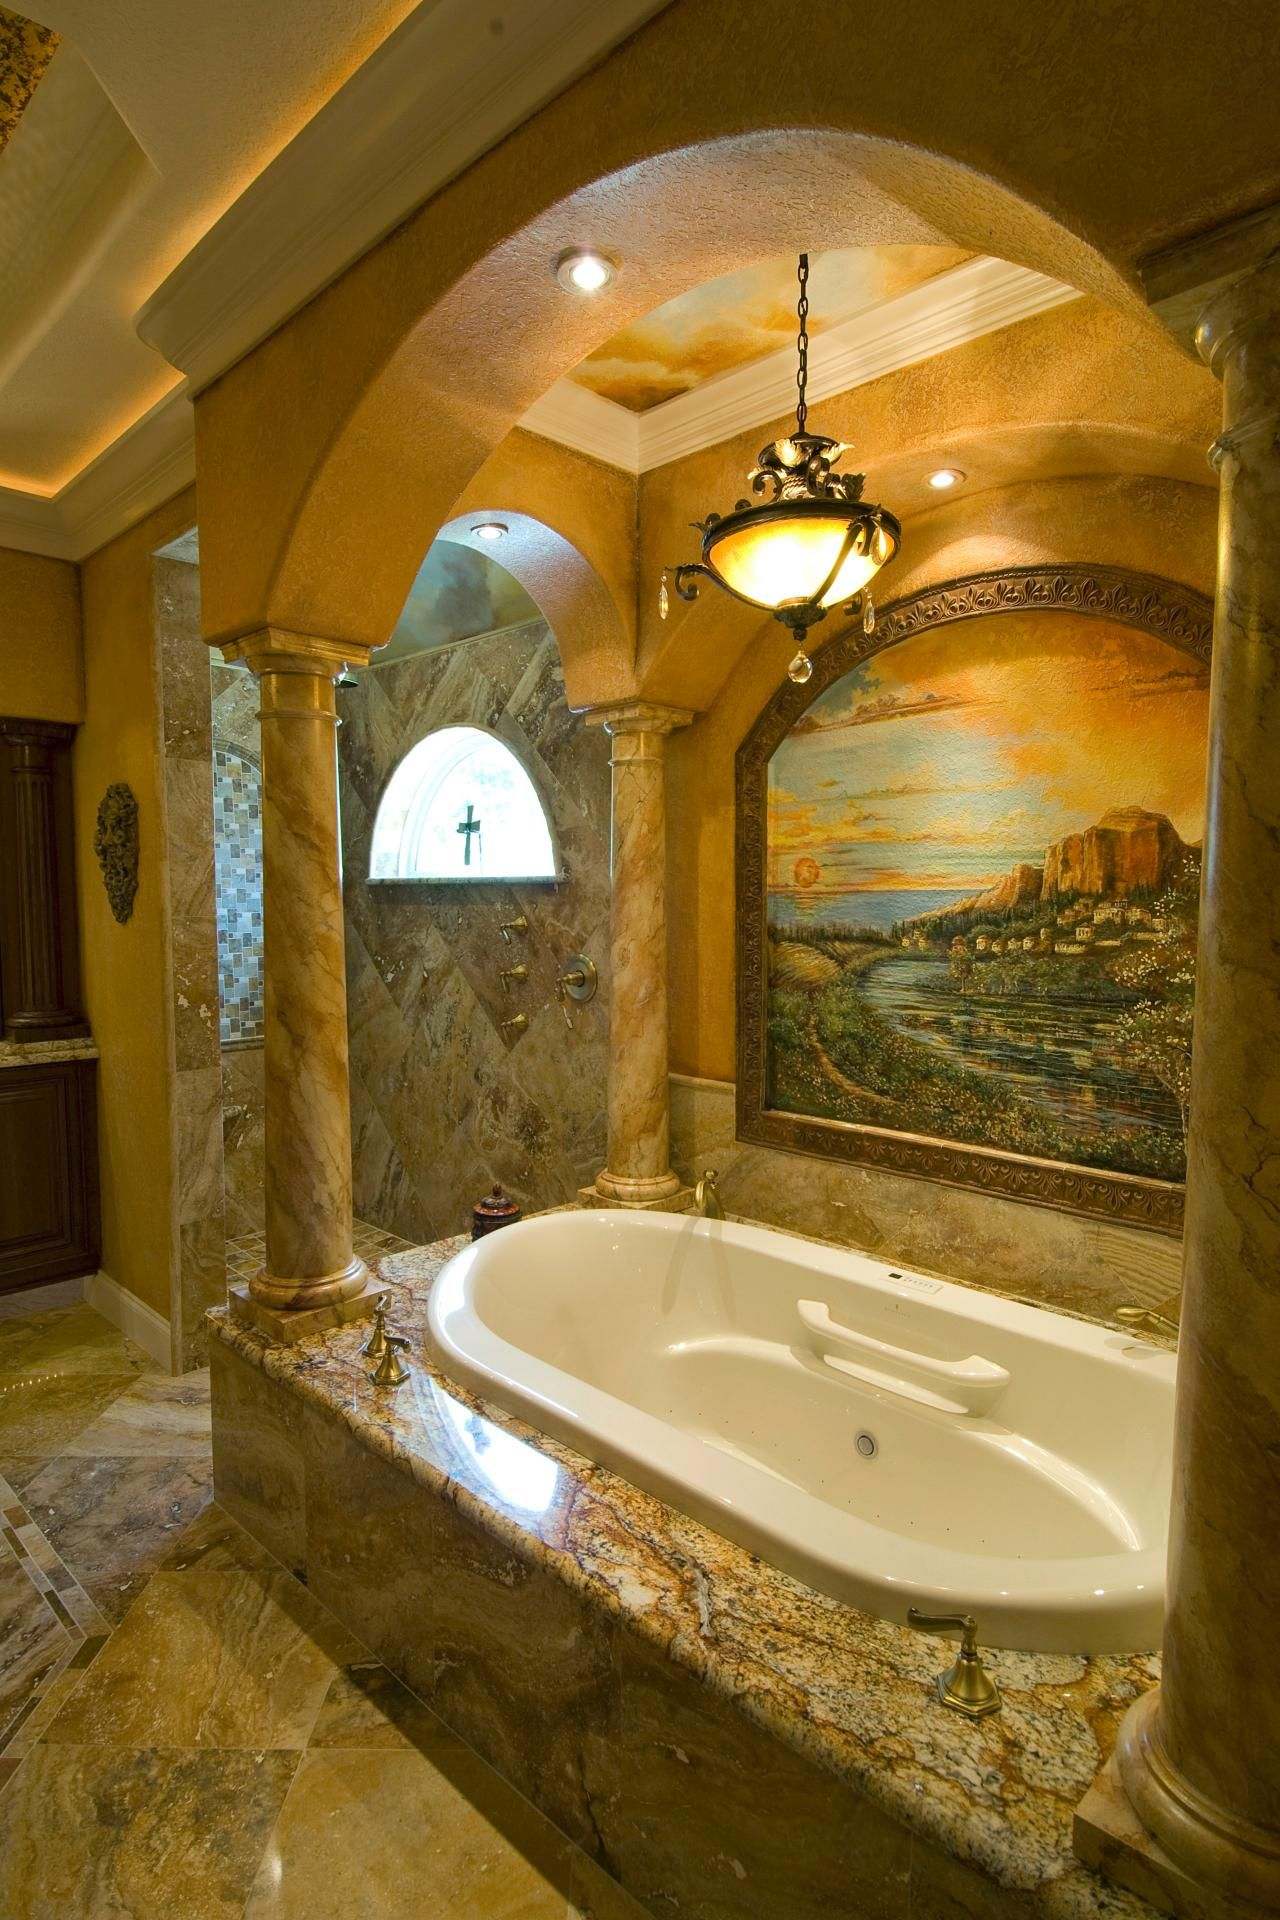 Tuscan Style Bathroom Designs Glamorous Elegant Marble Bathroom Design In Tuscan Style With A Bathtub Design Ideas